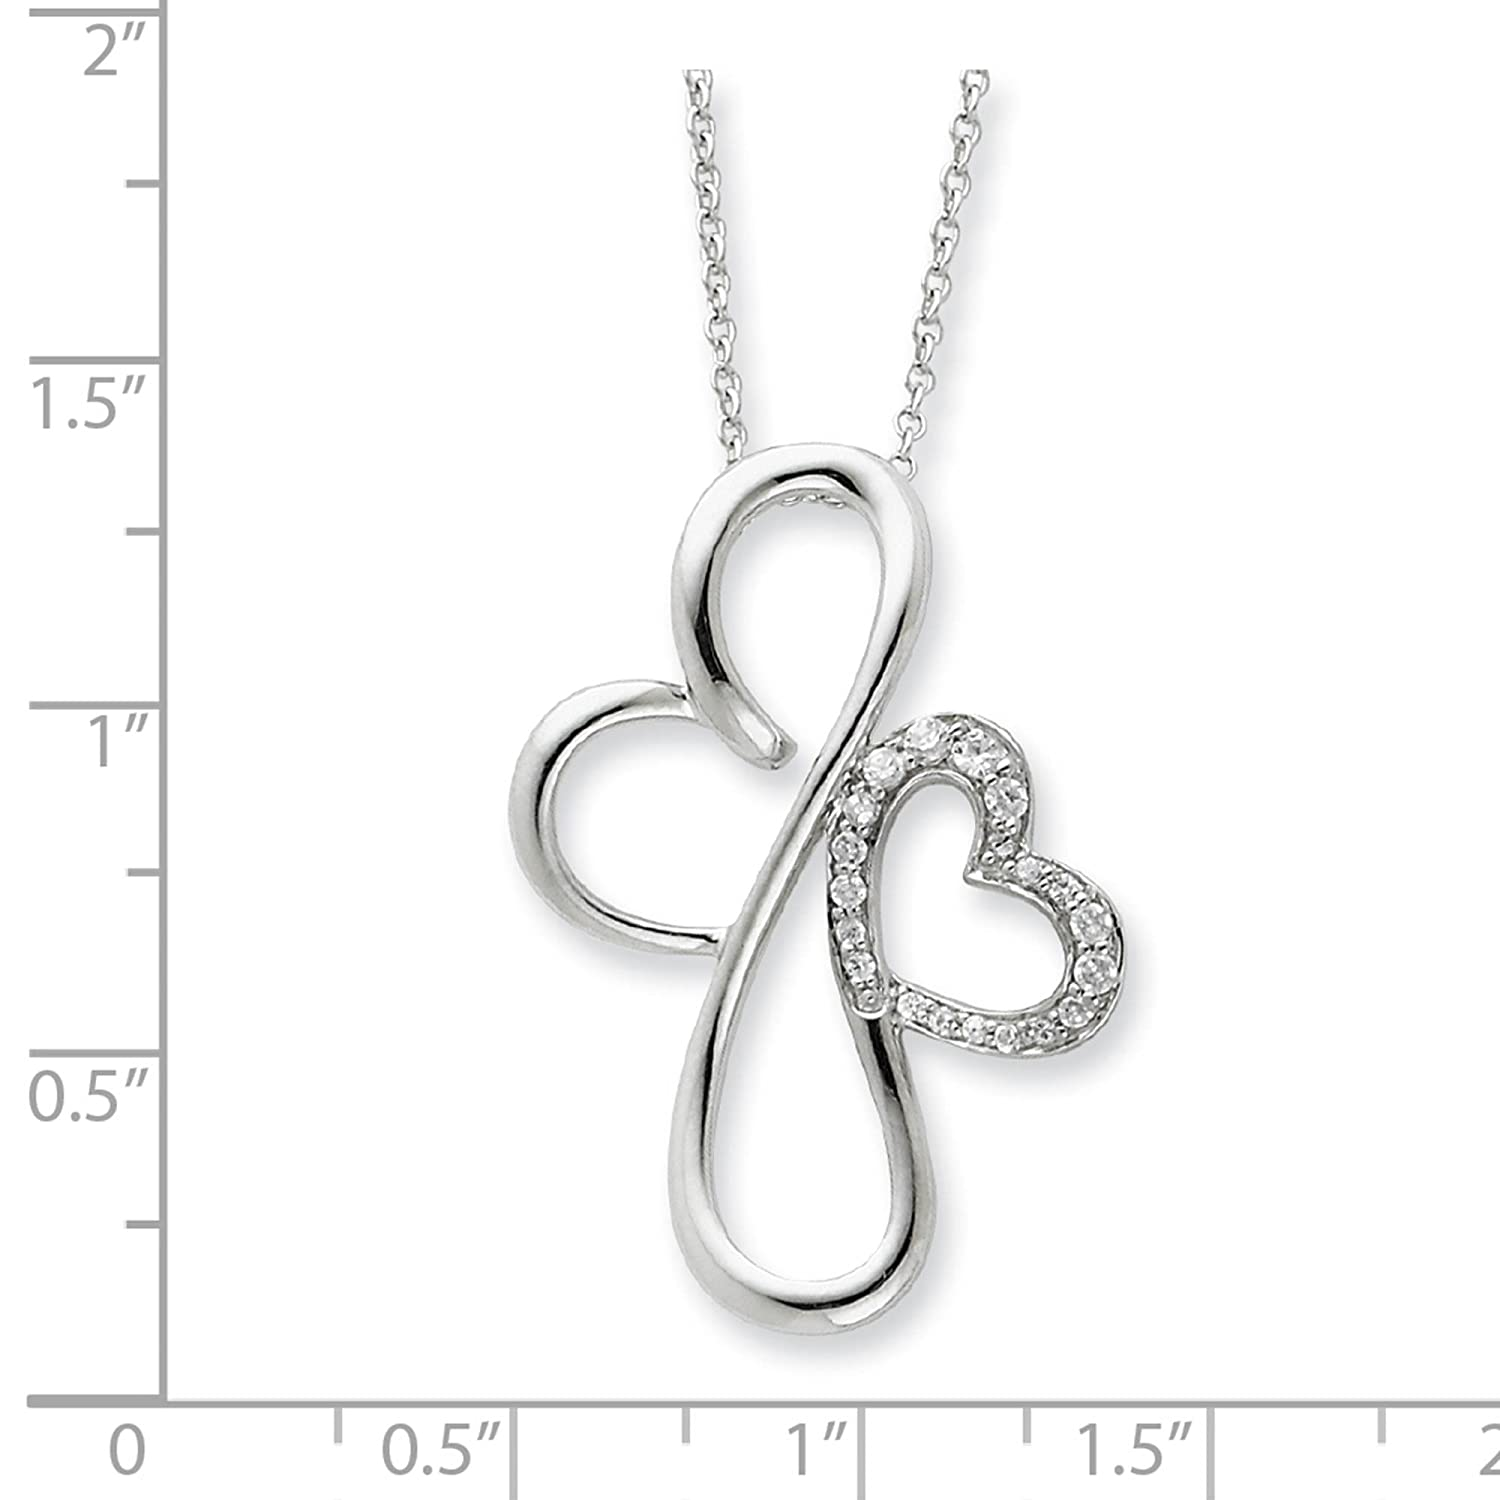 925 Sterling Silver Polished CZ Everlasting Love Pendant Necklace 18 by Sentimental Expressions